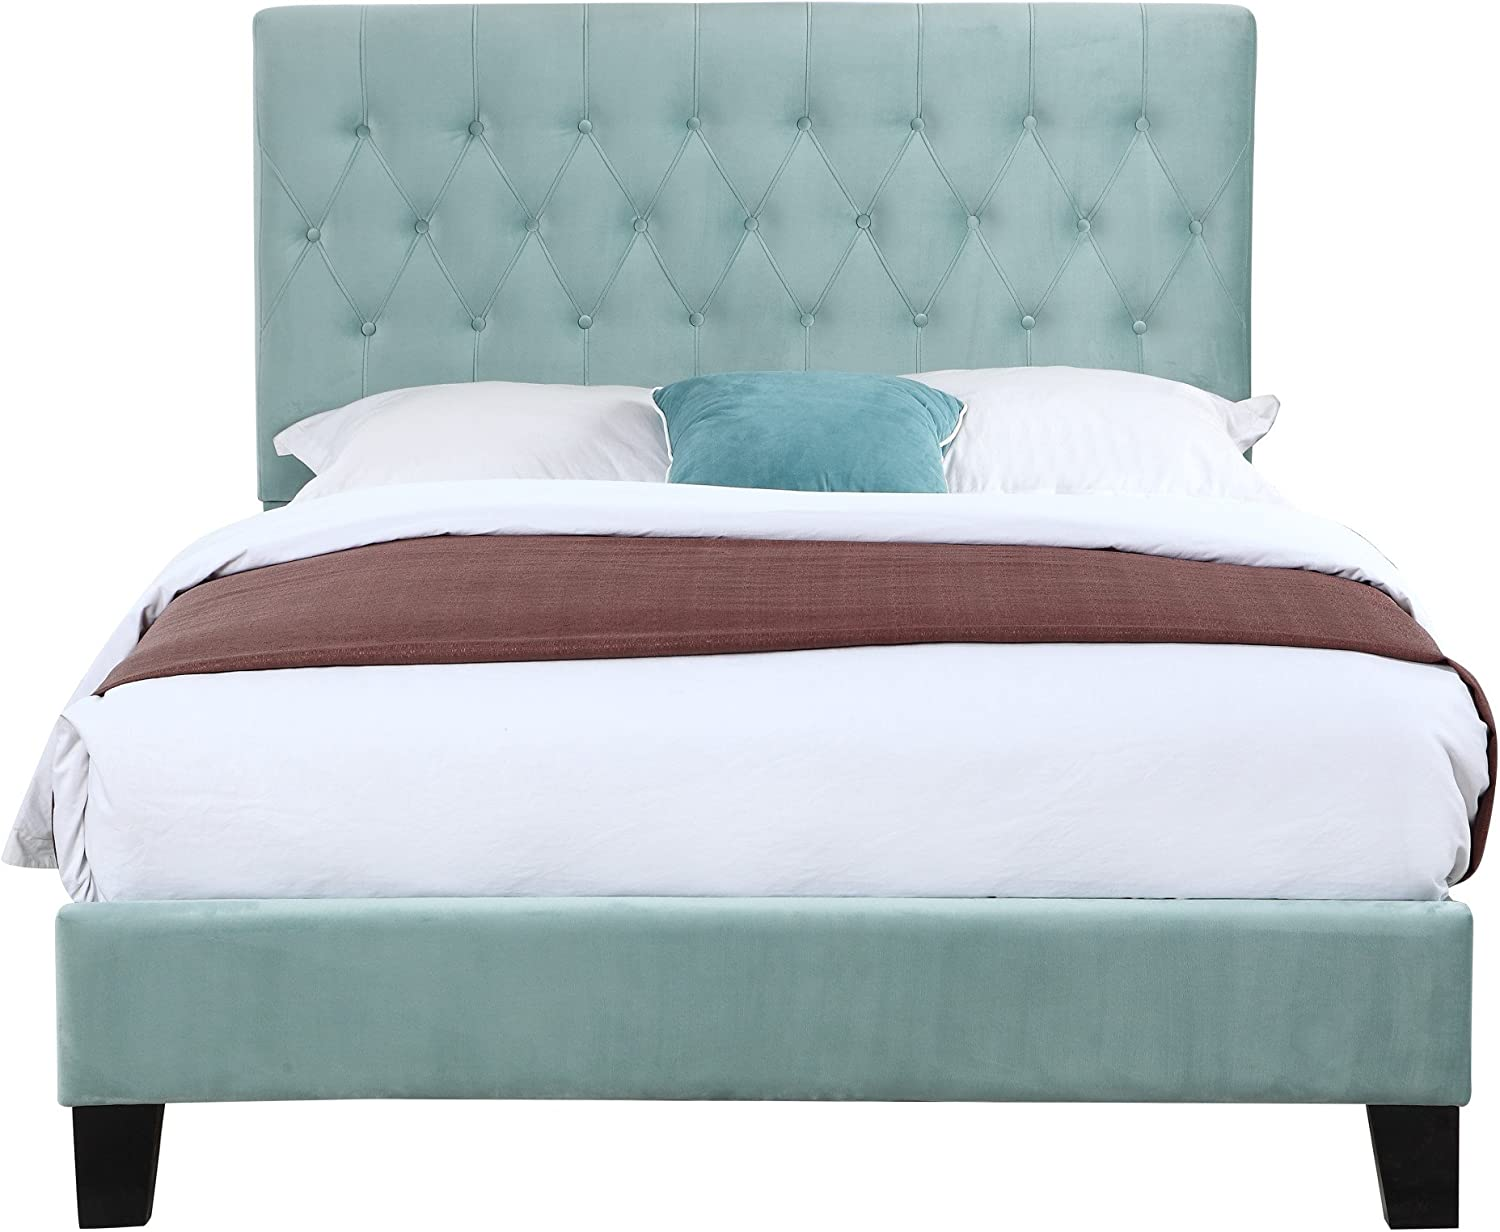 Artum Hill Upholstered Bed With Tufted, Padded Headboard, And Platform-Style Base